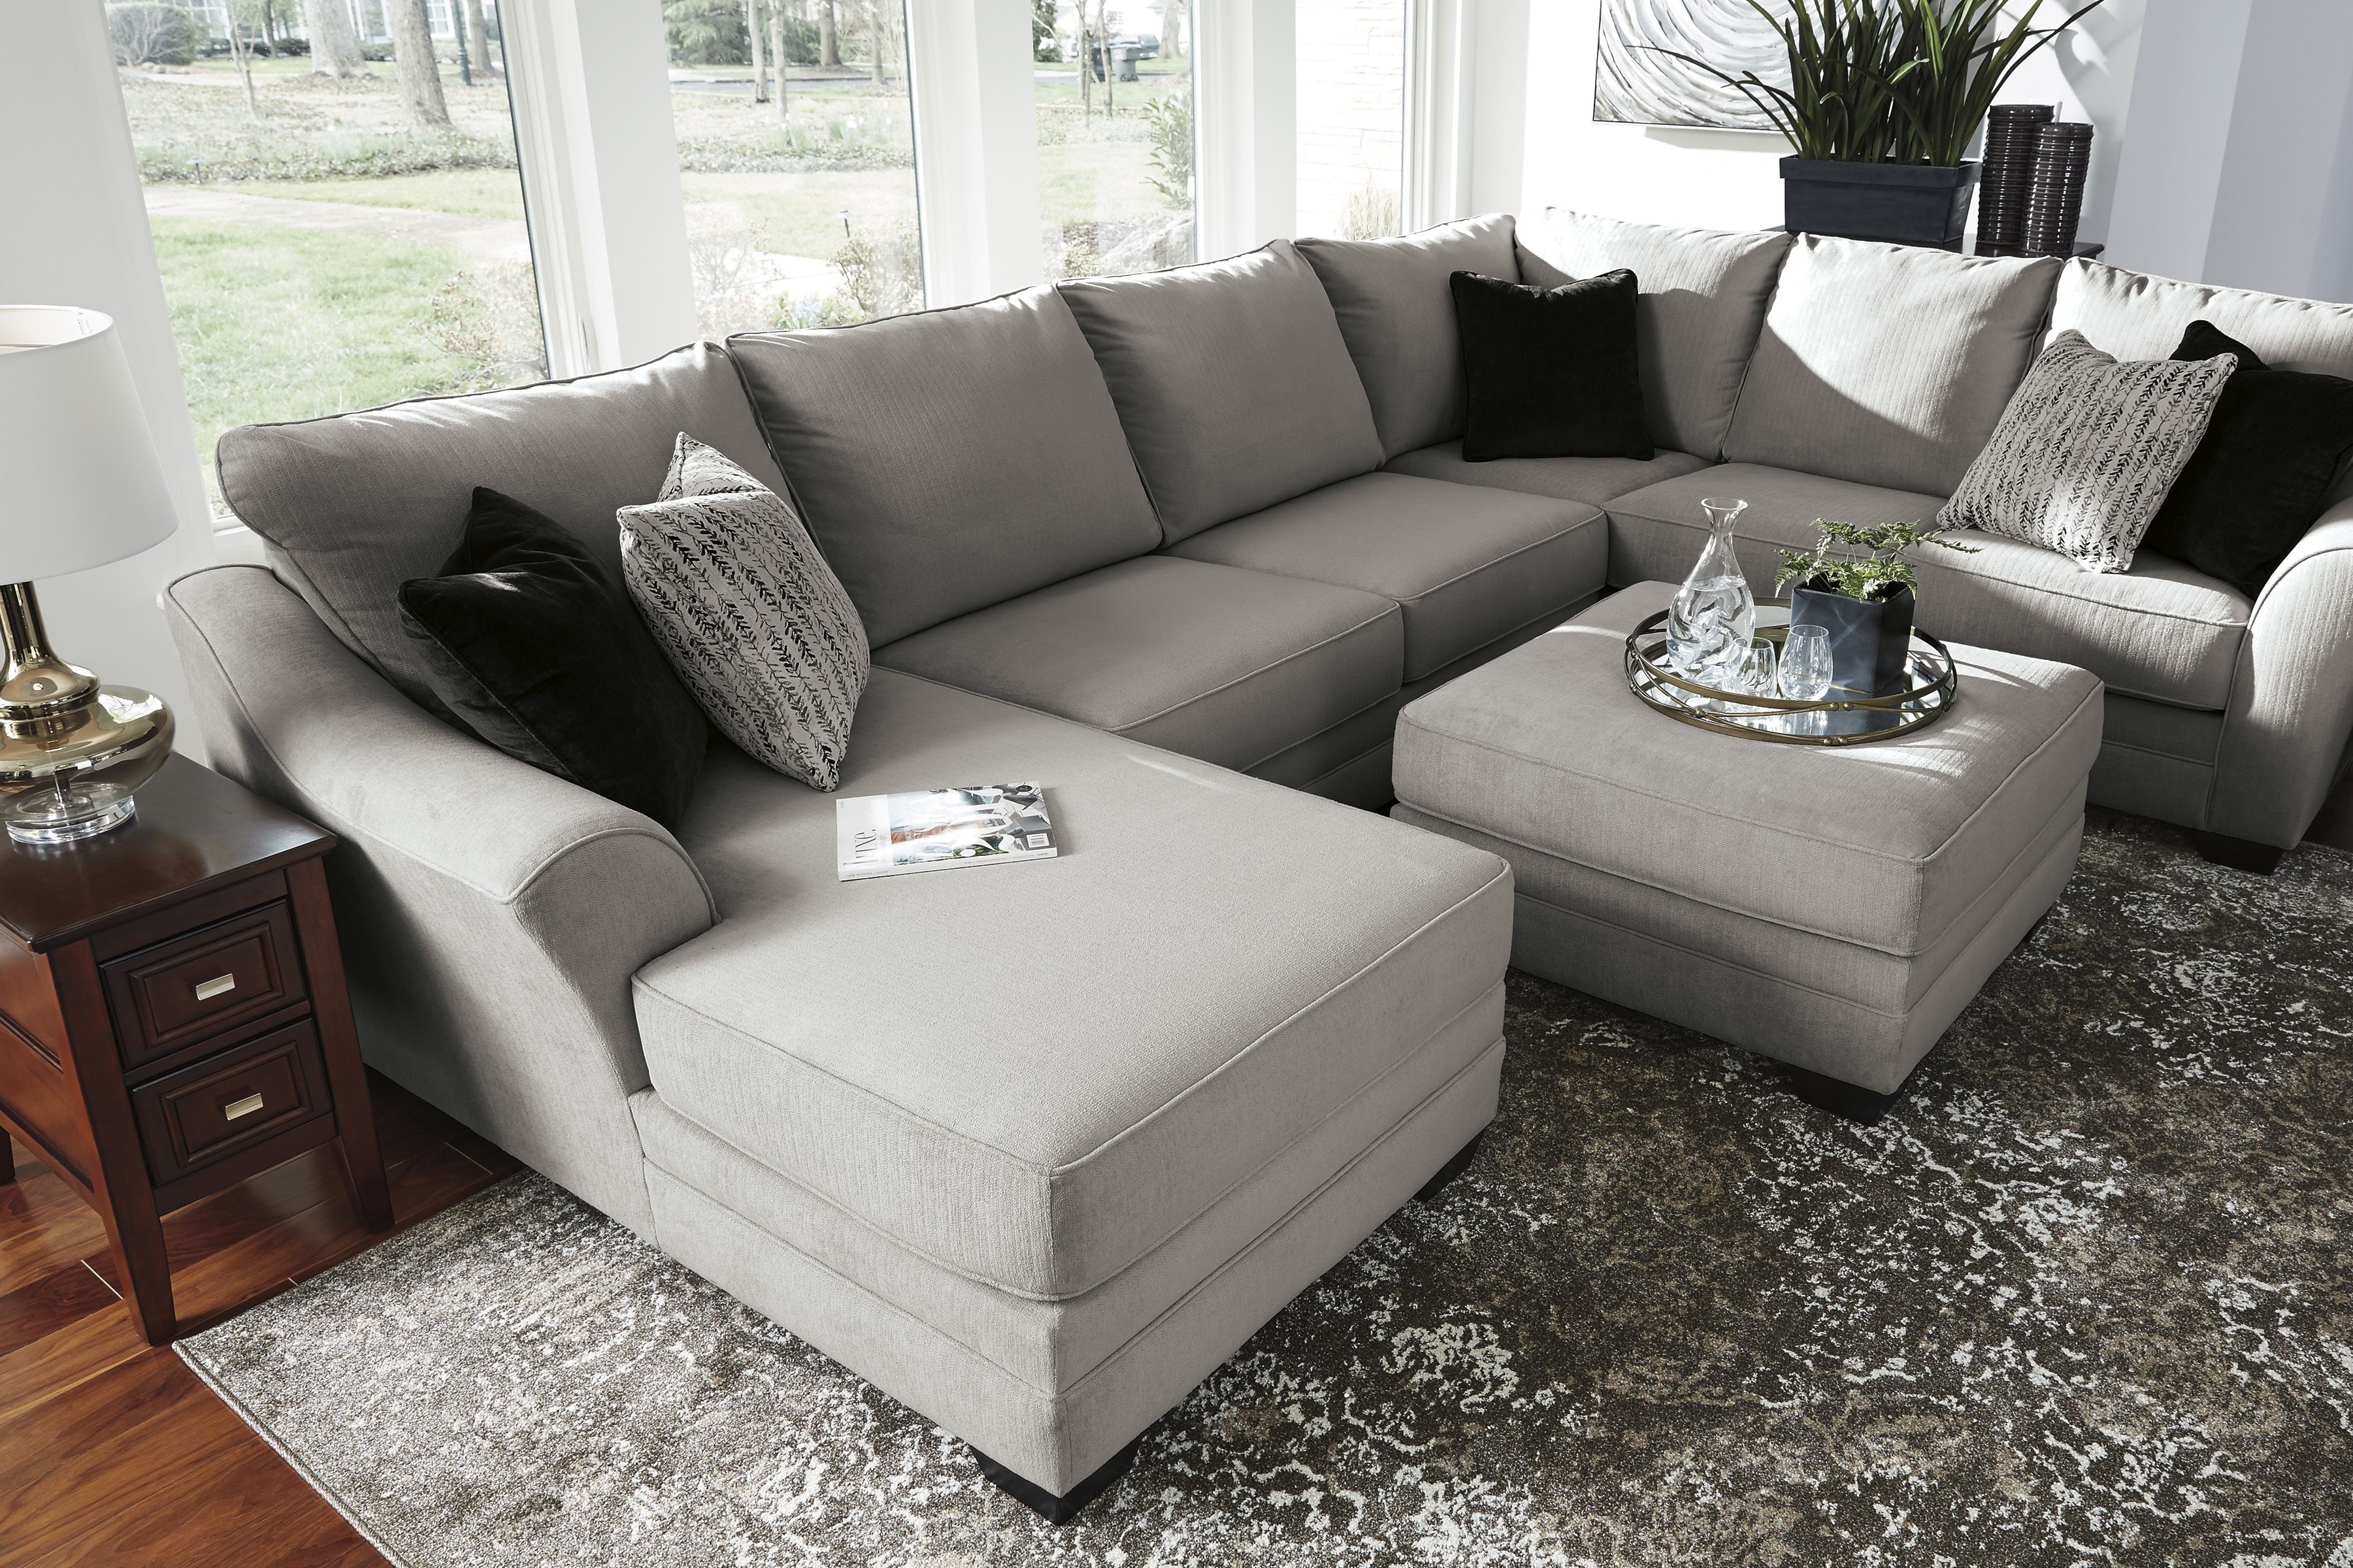 Palempor 3 Piece Laf Sectional In 2018 | Home Is Where The Heart Is With Norfolk Grey 3 Piece Sectionals With Raf Chaise (View 8 of 25)